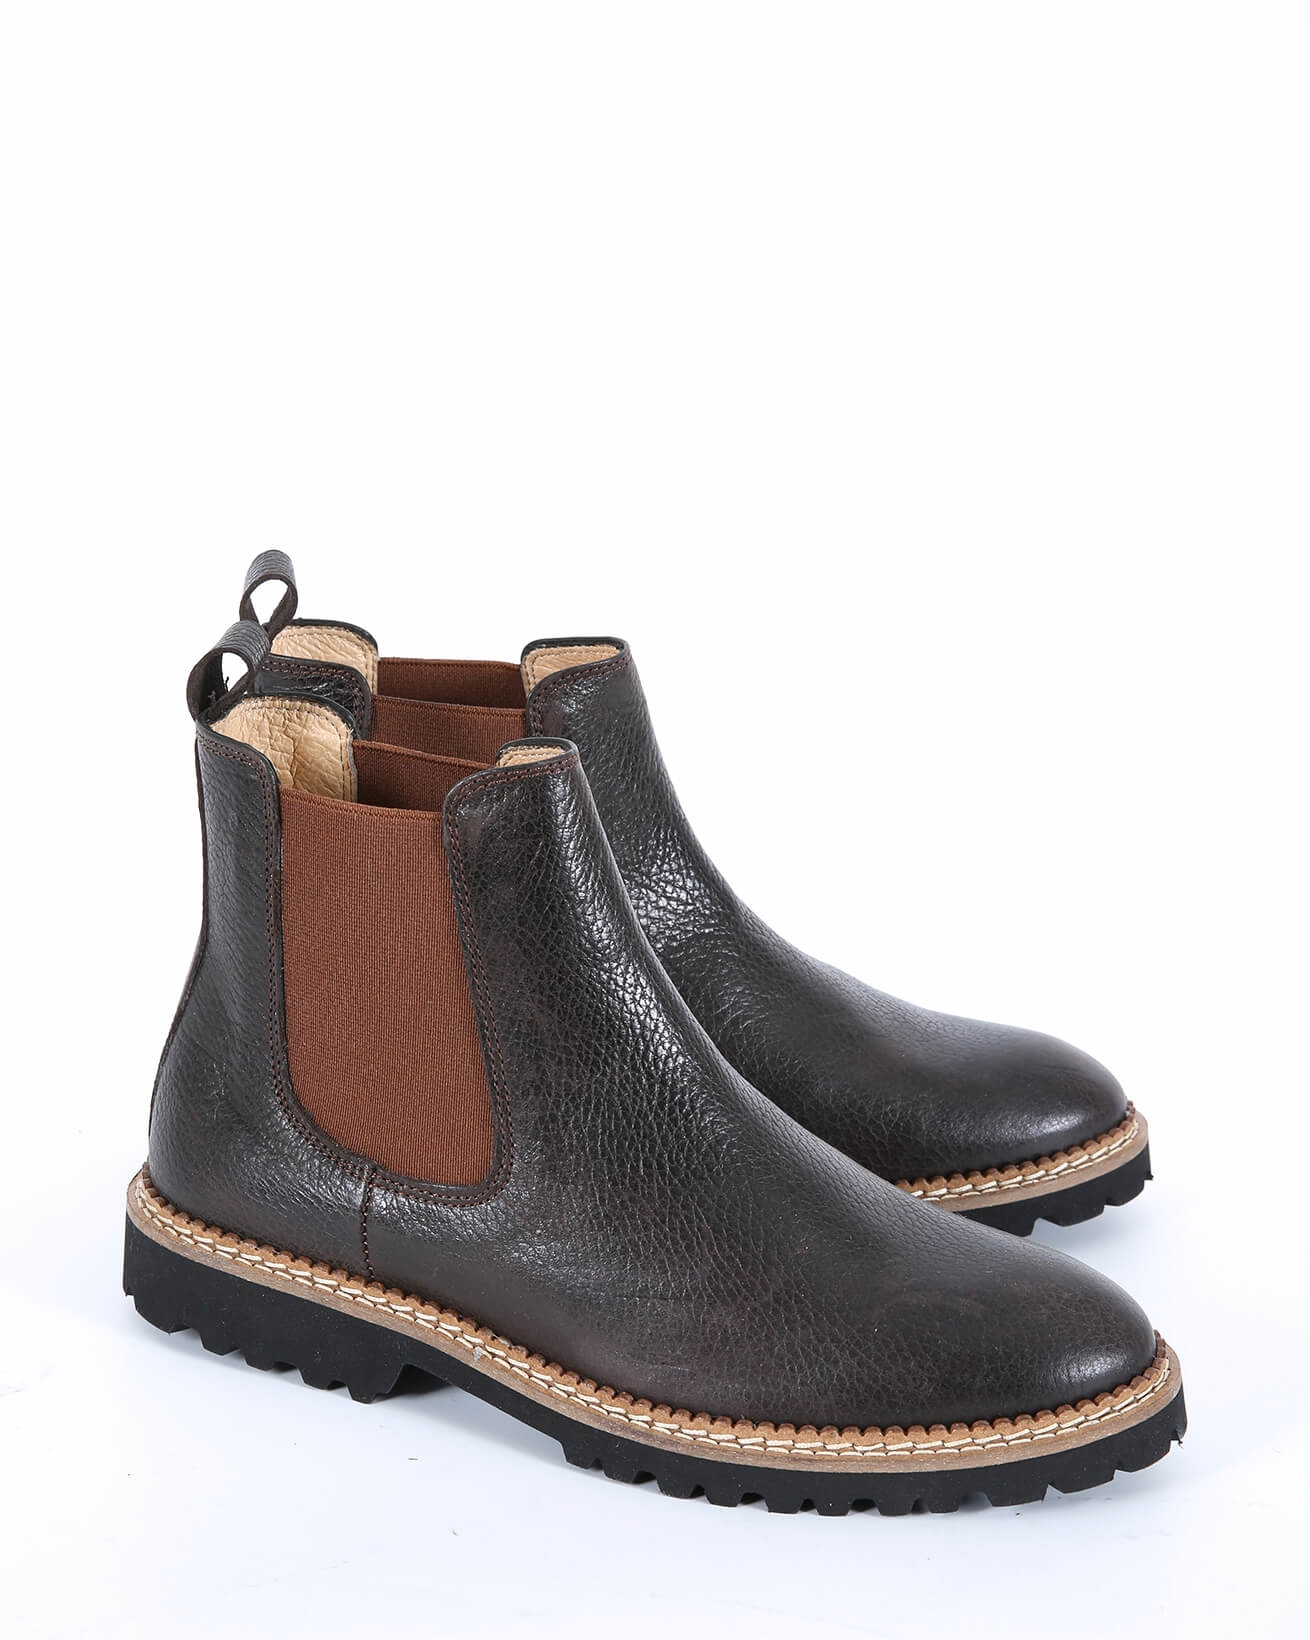 _0037_505-leather chelsea boots-dark brown.jpg